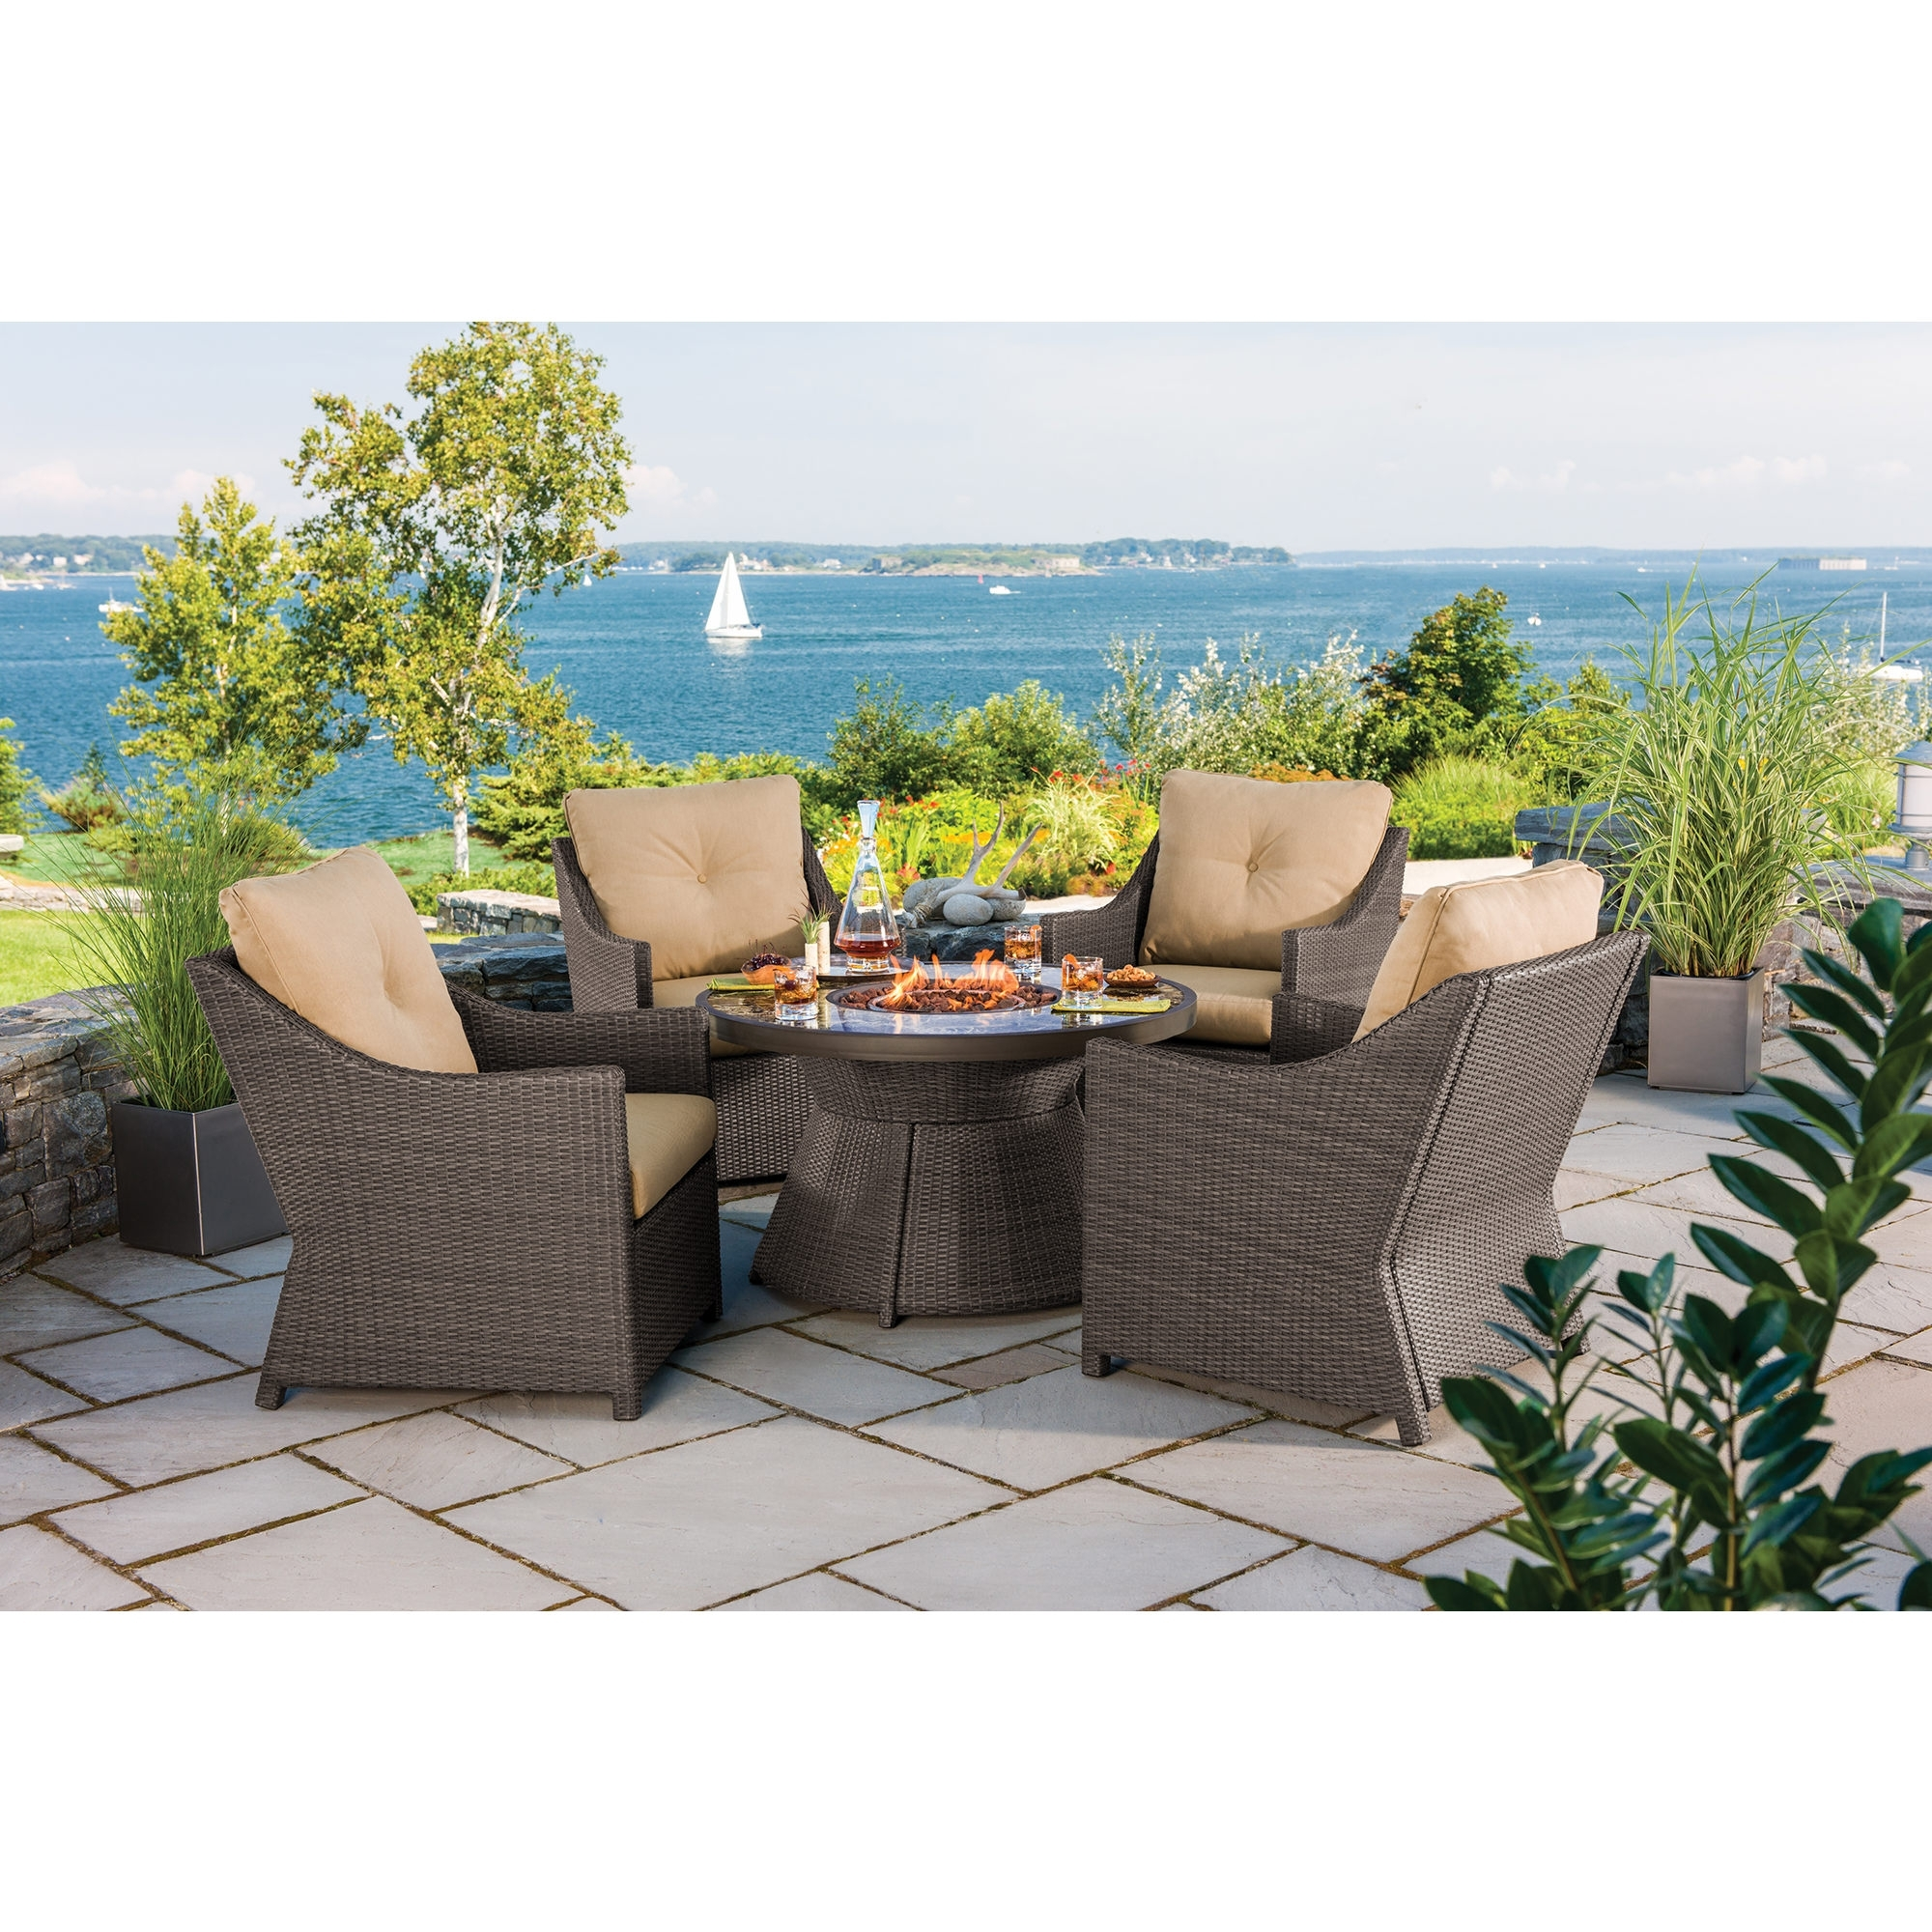 Recent Berkley Jensen Antigua Piece Wicker Fire Pit Chat Set Bjs Propane Throughout Patio Conversation Sets With Propane Fire Pit (Gallery 18 of 20)